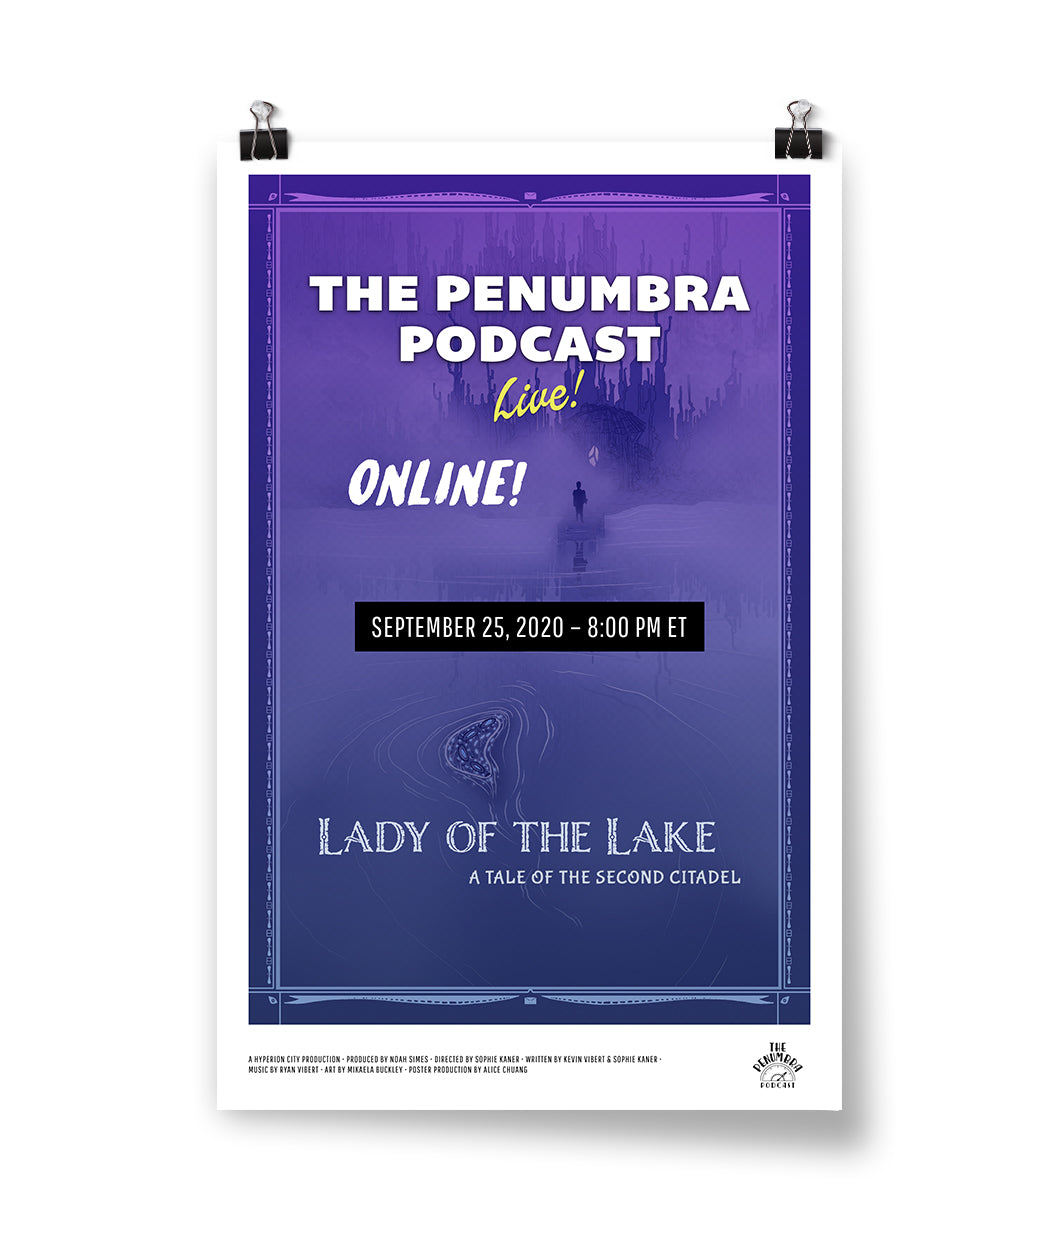 Lady of the Lake: Tale From the Second Citadel Poster